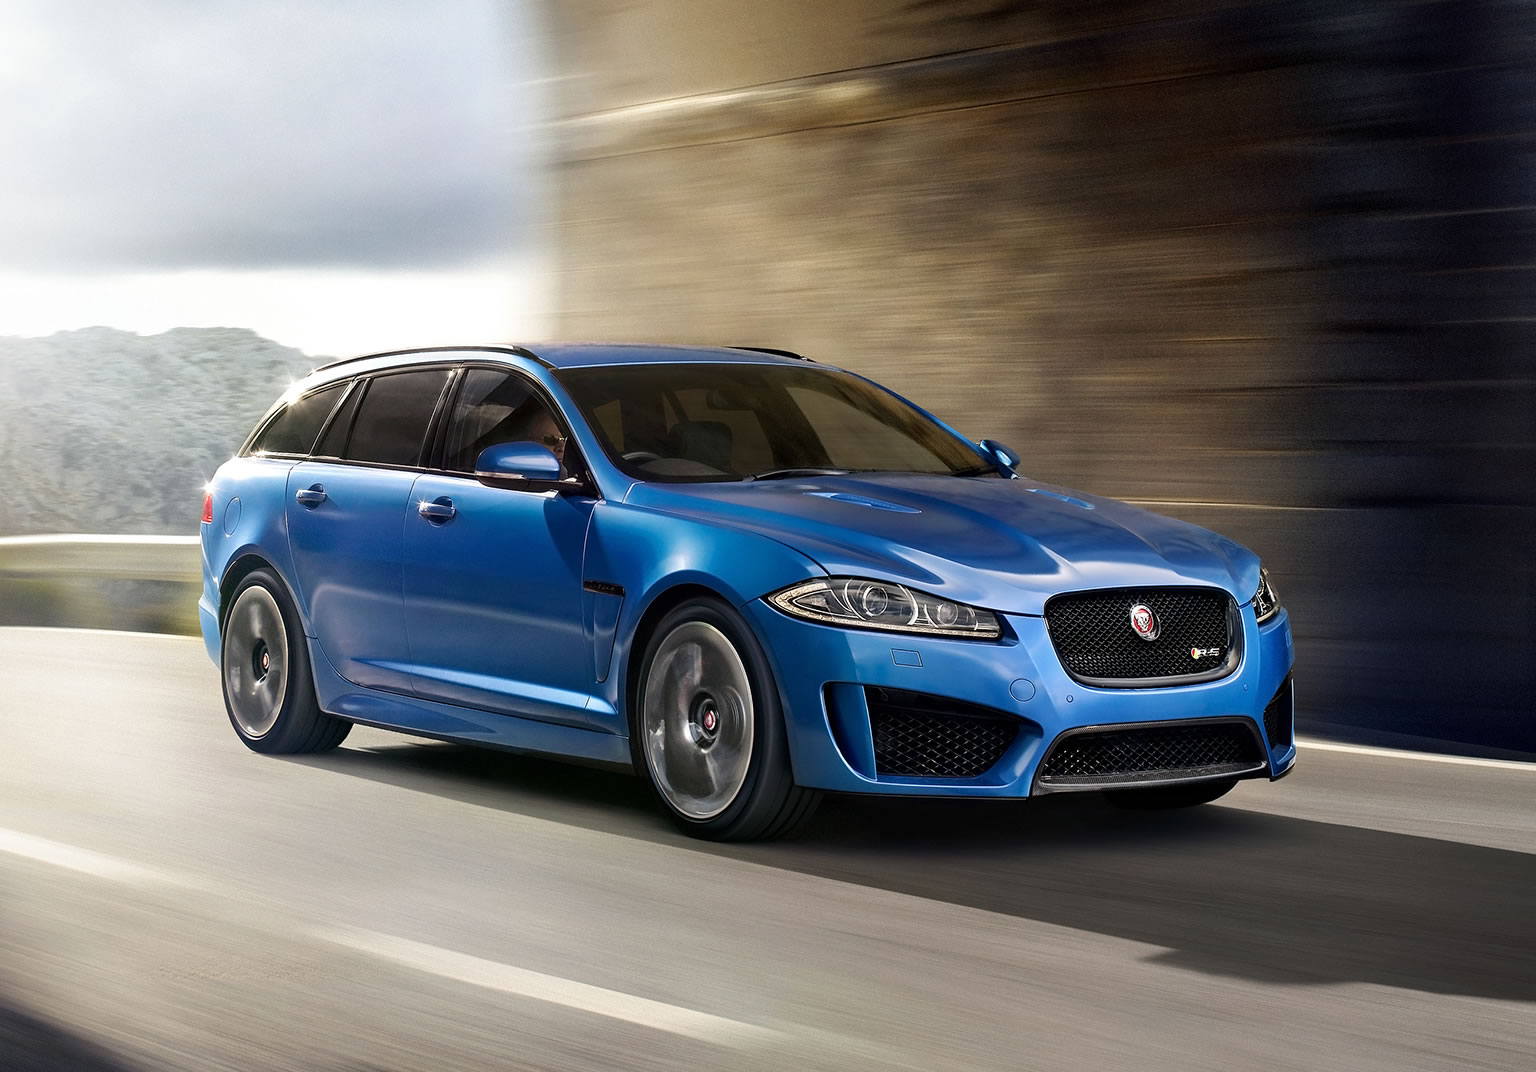 2015 jaguar xfr s sportbrake front photo ultra blue. Black Bedroom Furniture Sets. Home Design Ideas